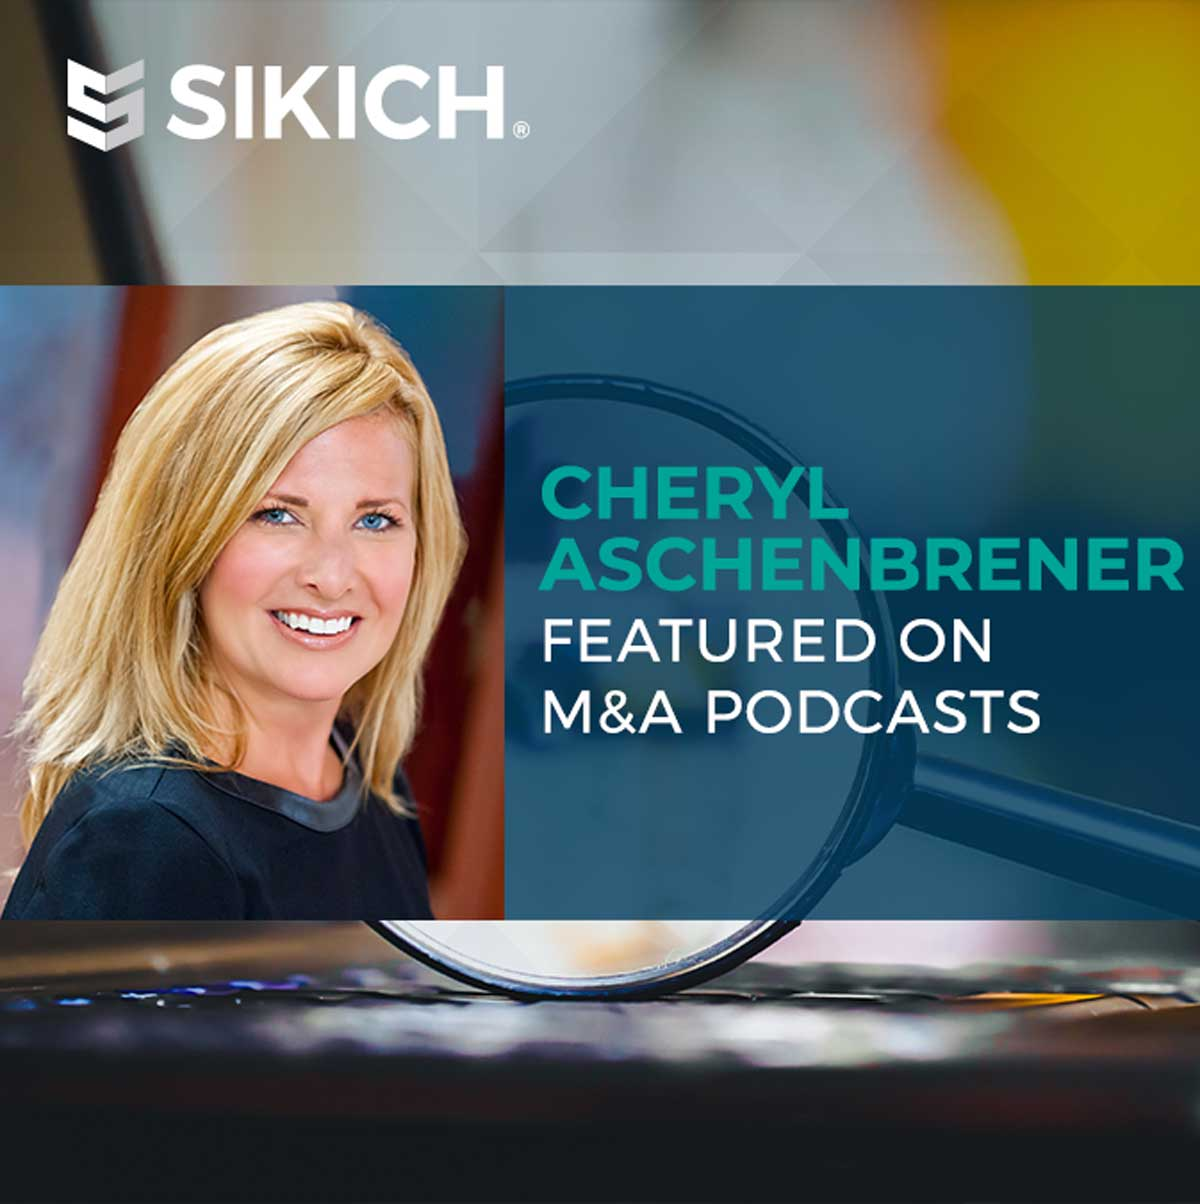 Cheryl-Aschenbrener-Featured-on-M&A-Podcasts